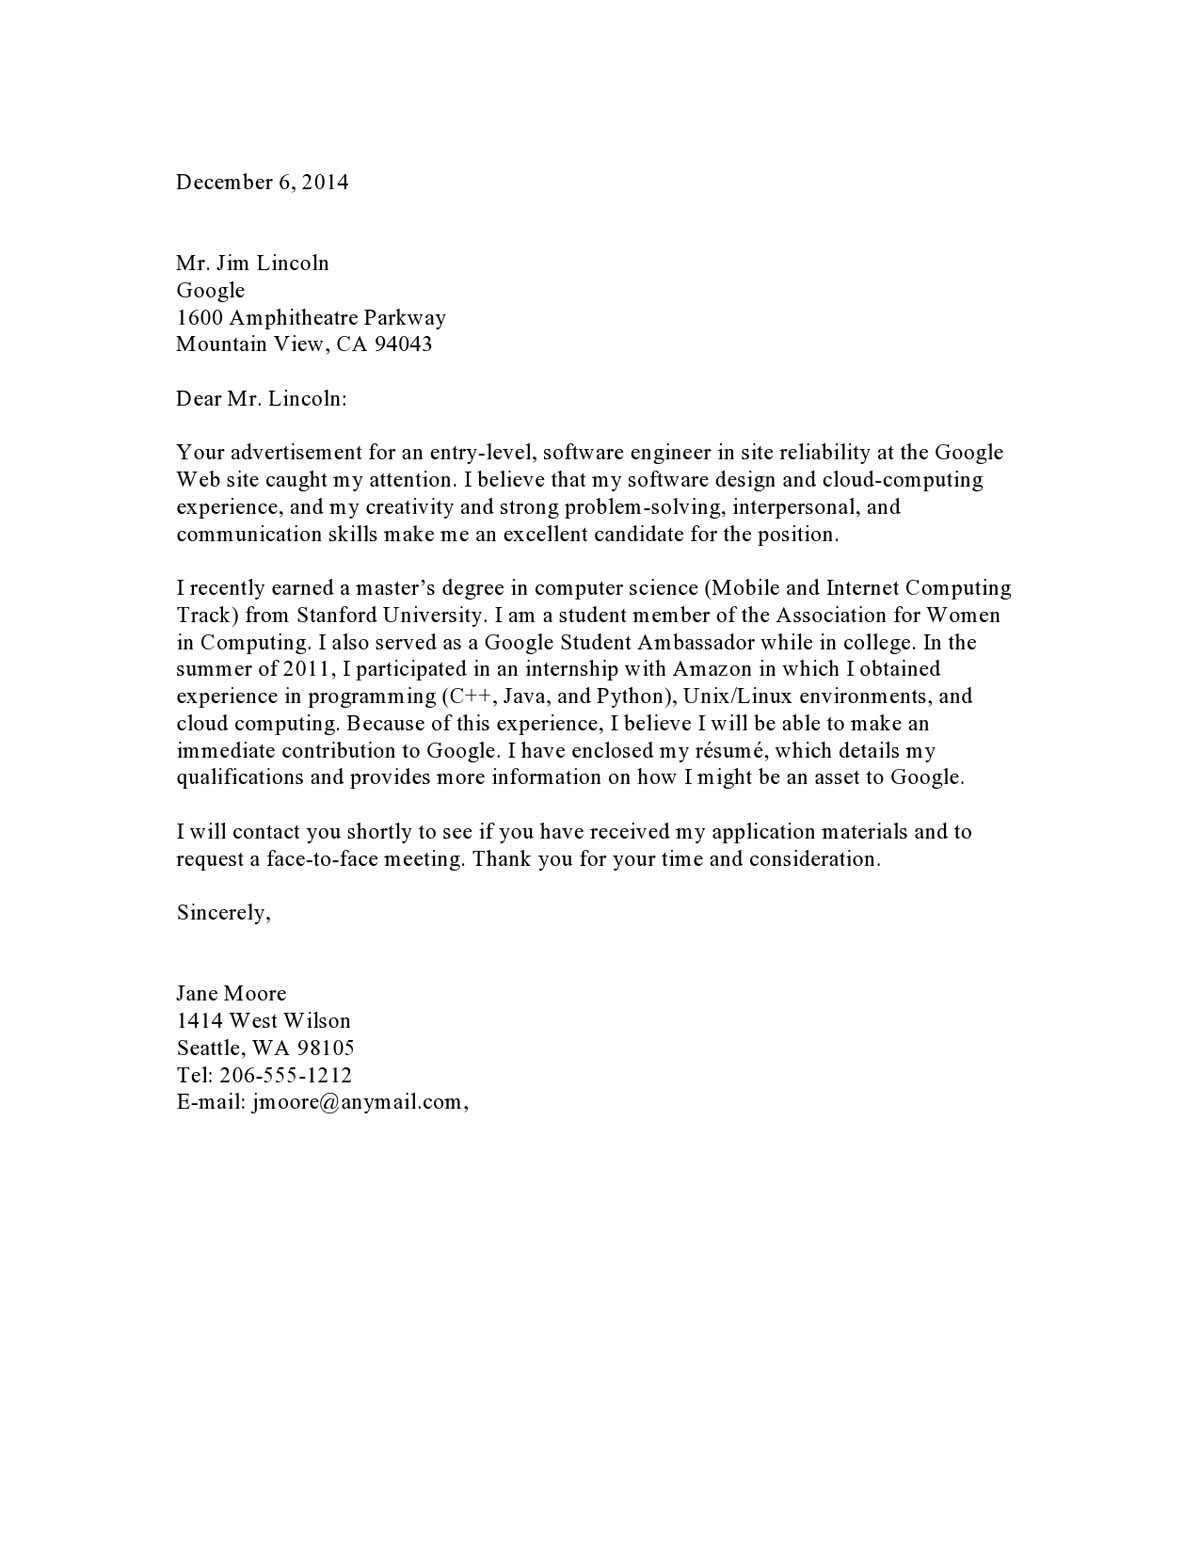 cover letter samples templates examples vault for resume with no experience cletreinter09 Resume Cover Letter For Resume With No Experience